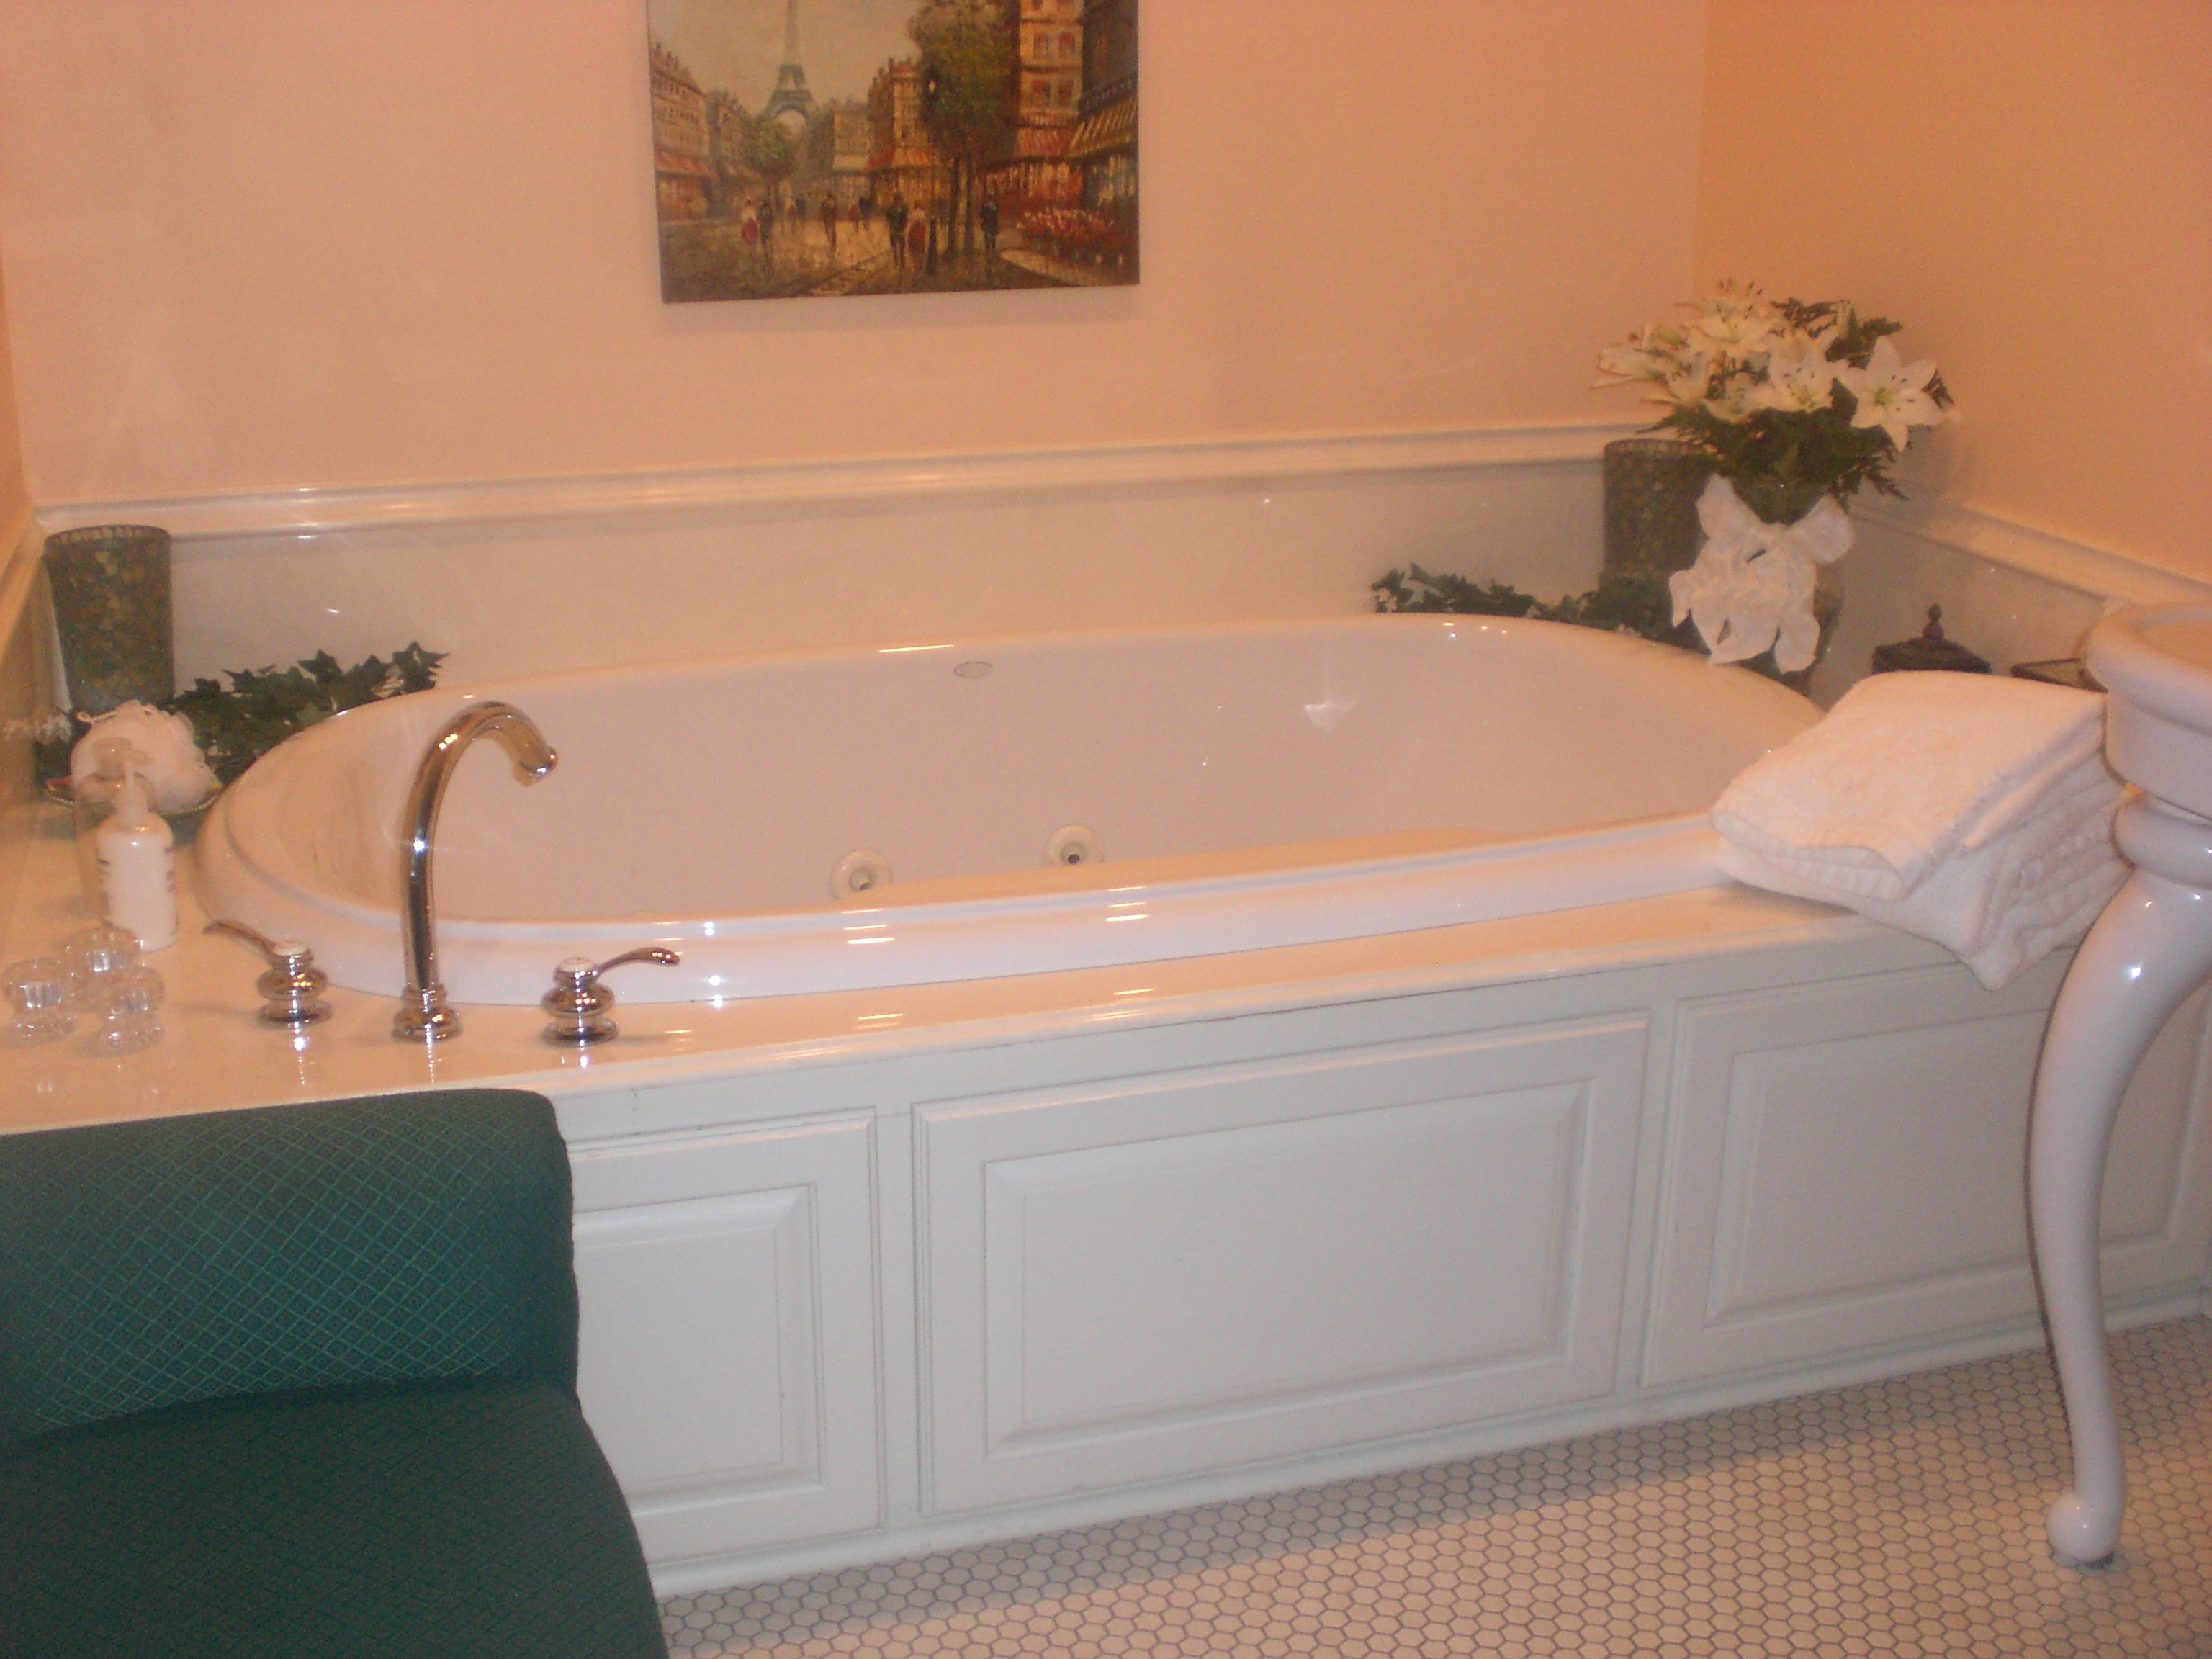 Weddings receptions special events the caldwell house blog page 2 - Destockage spa jacuzzi ...